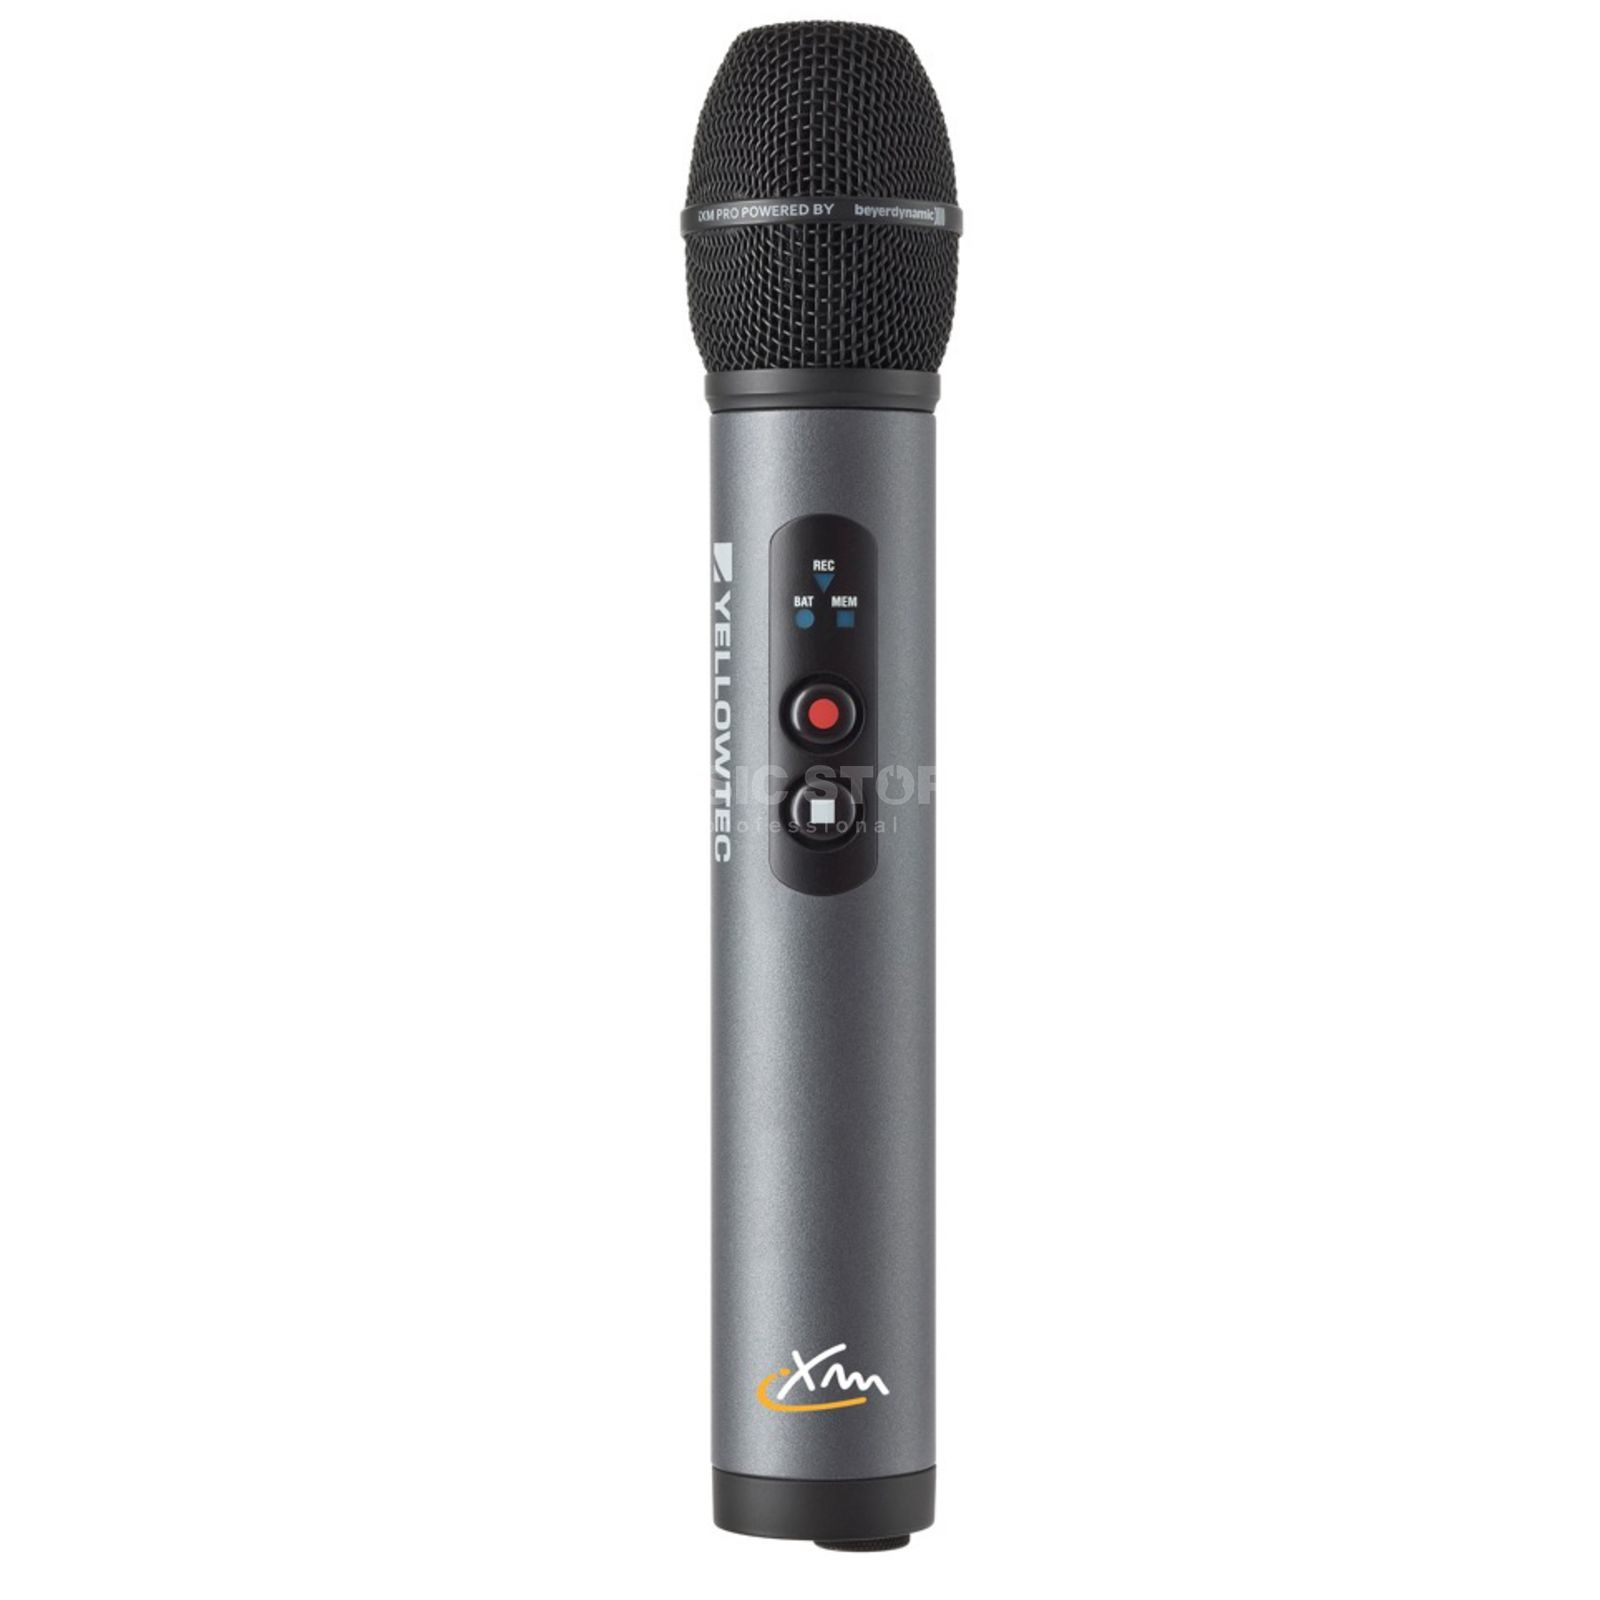 Yellowtec iXm Premium Head Cardioid Hand Microphone with Recorder Produktbillede